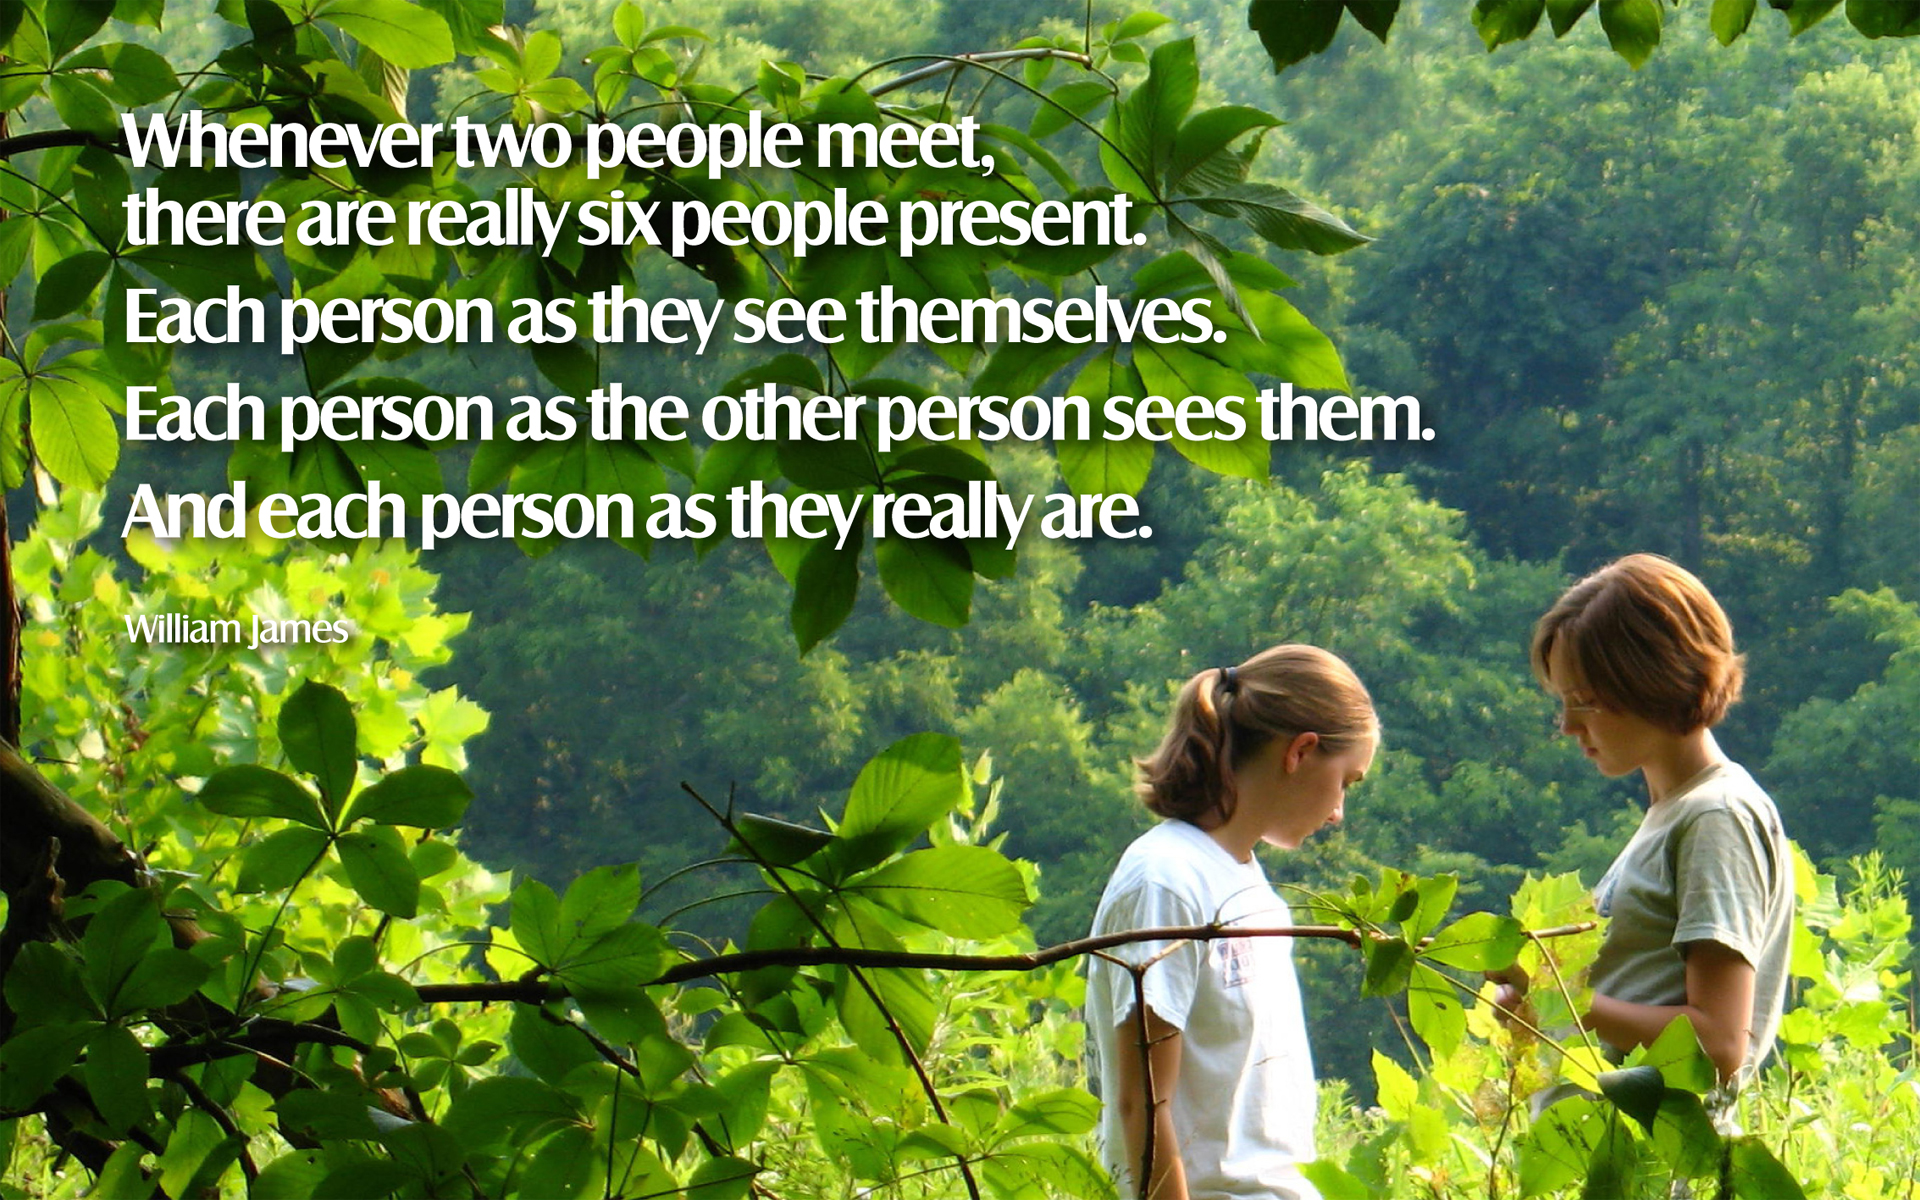 Whenever two people meet, there are really six people present. Each person as they see themselves. Each person as the other person sees them. And each person as they really are. — William James [1920 x 1200]